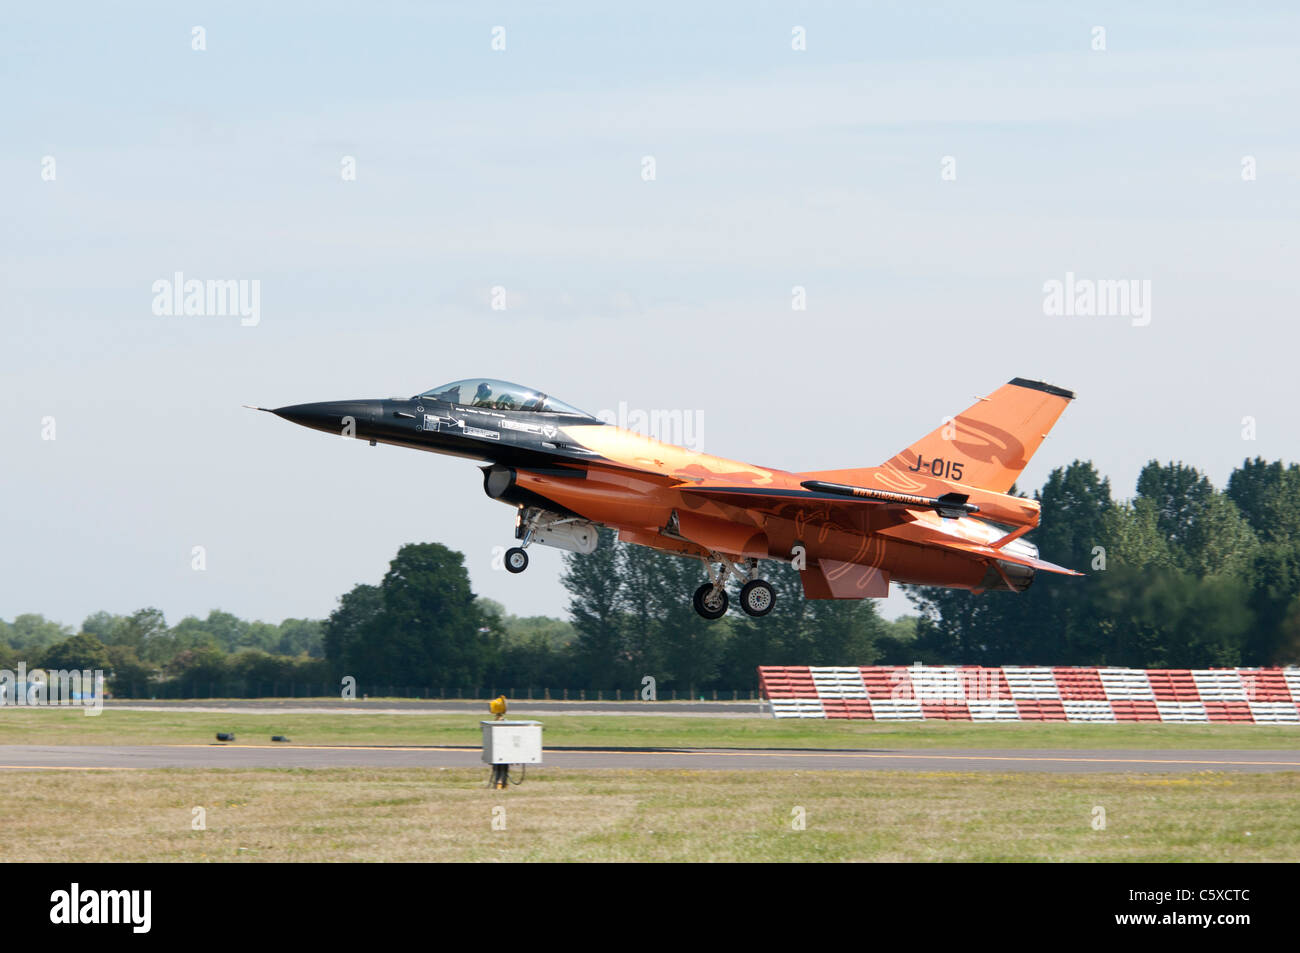 Colorful General Dynamics F-16AM Fighting Falcon J-015 from the Royal Netherlands Air Force Demo Team takes off - Stock Image